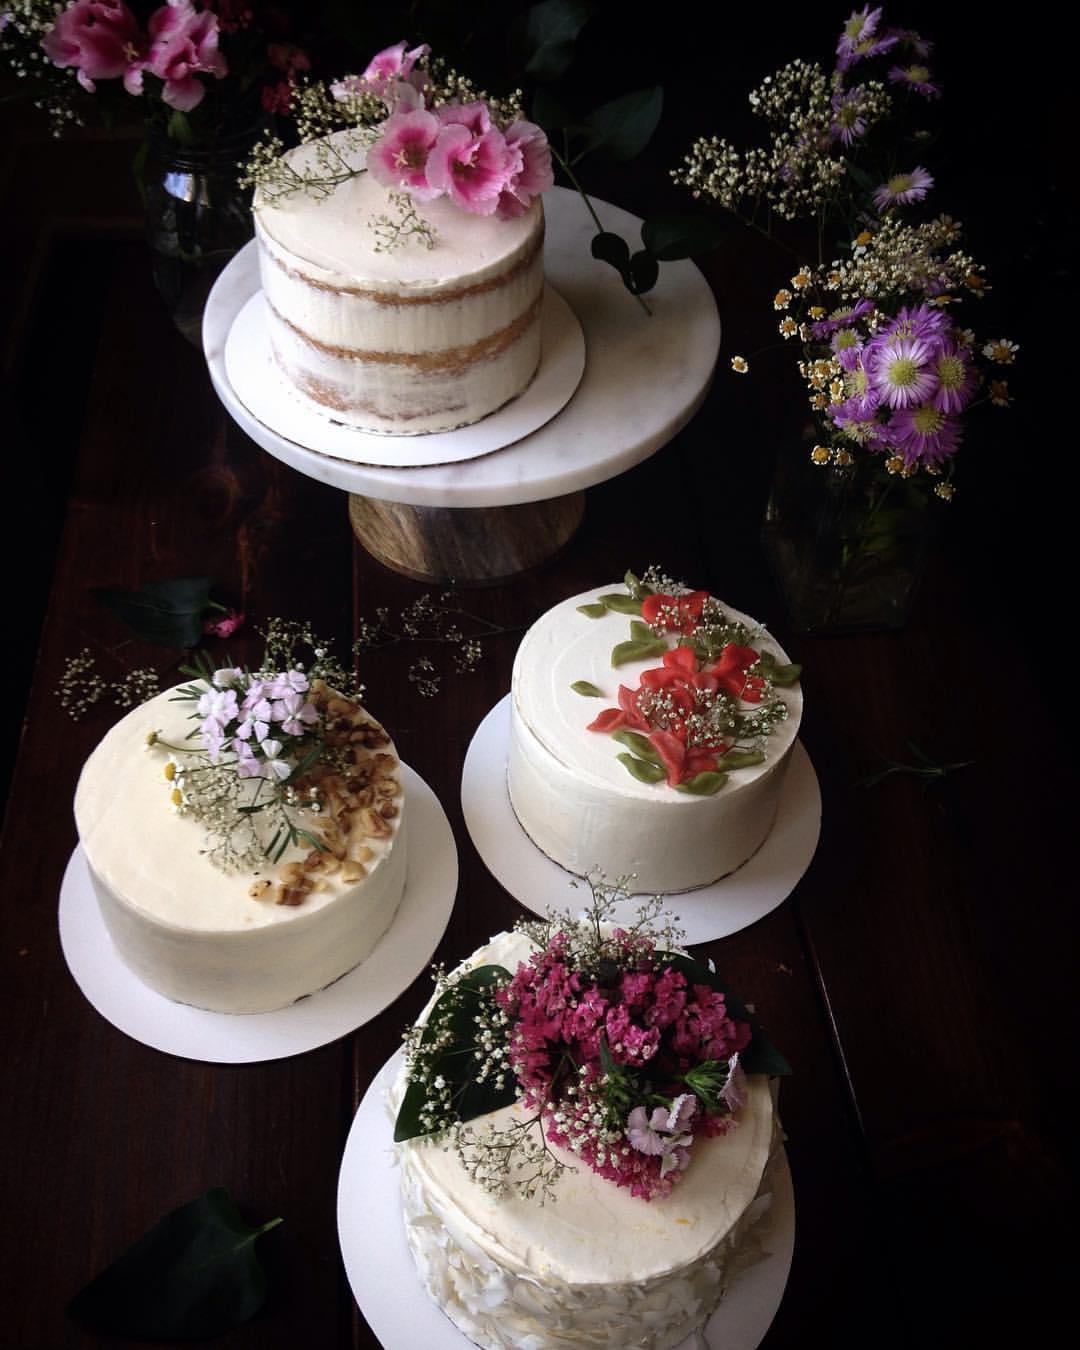 decorated cakes on cake stands